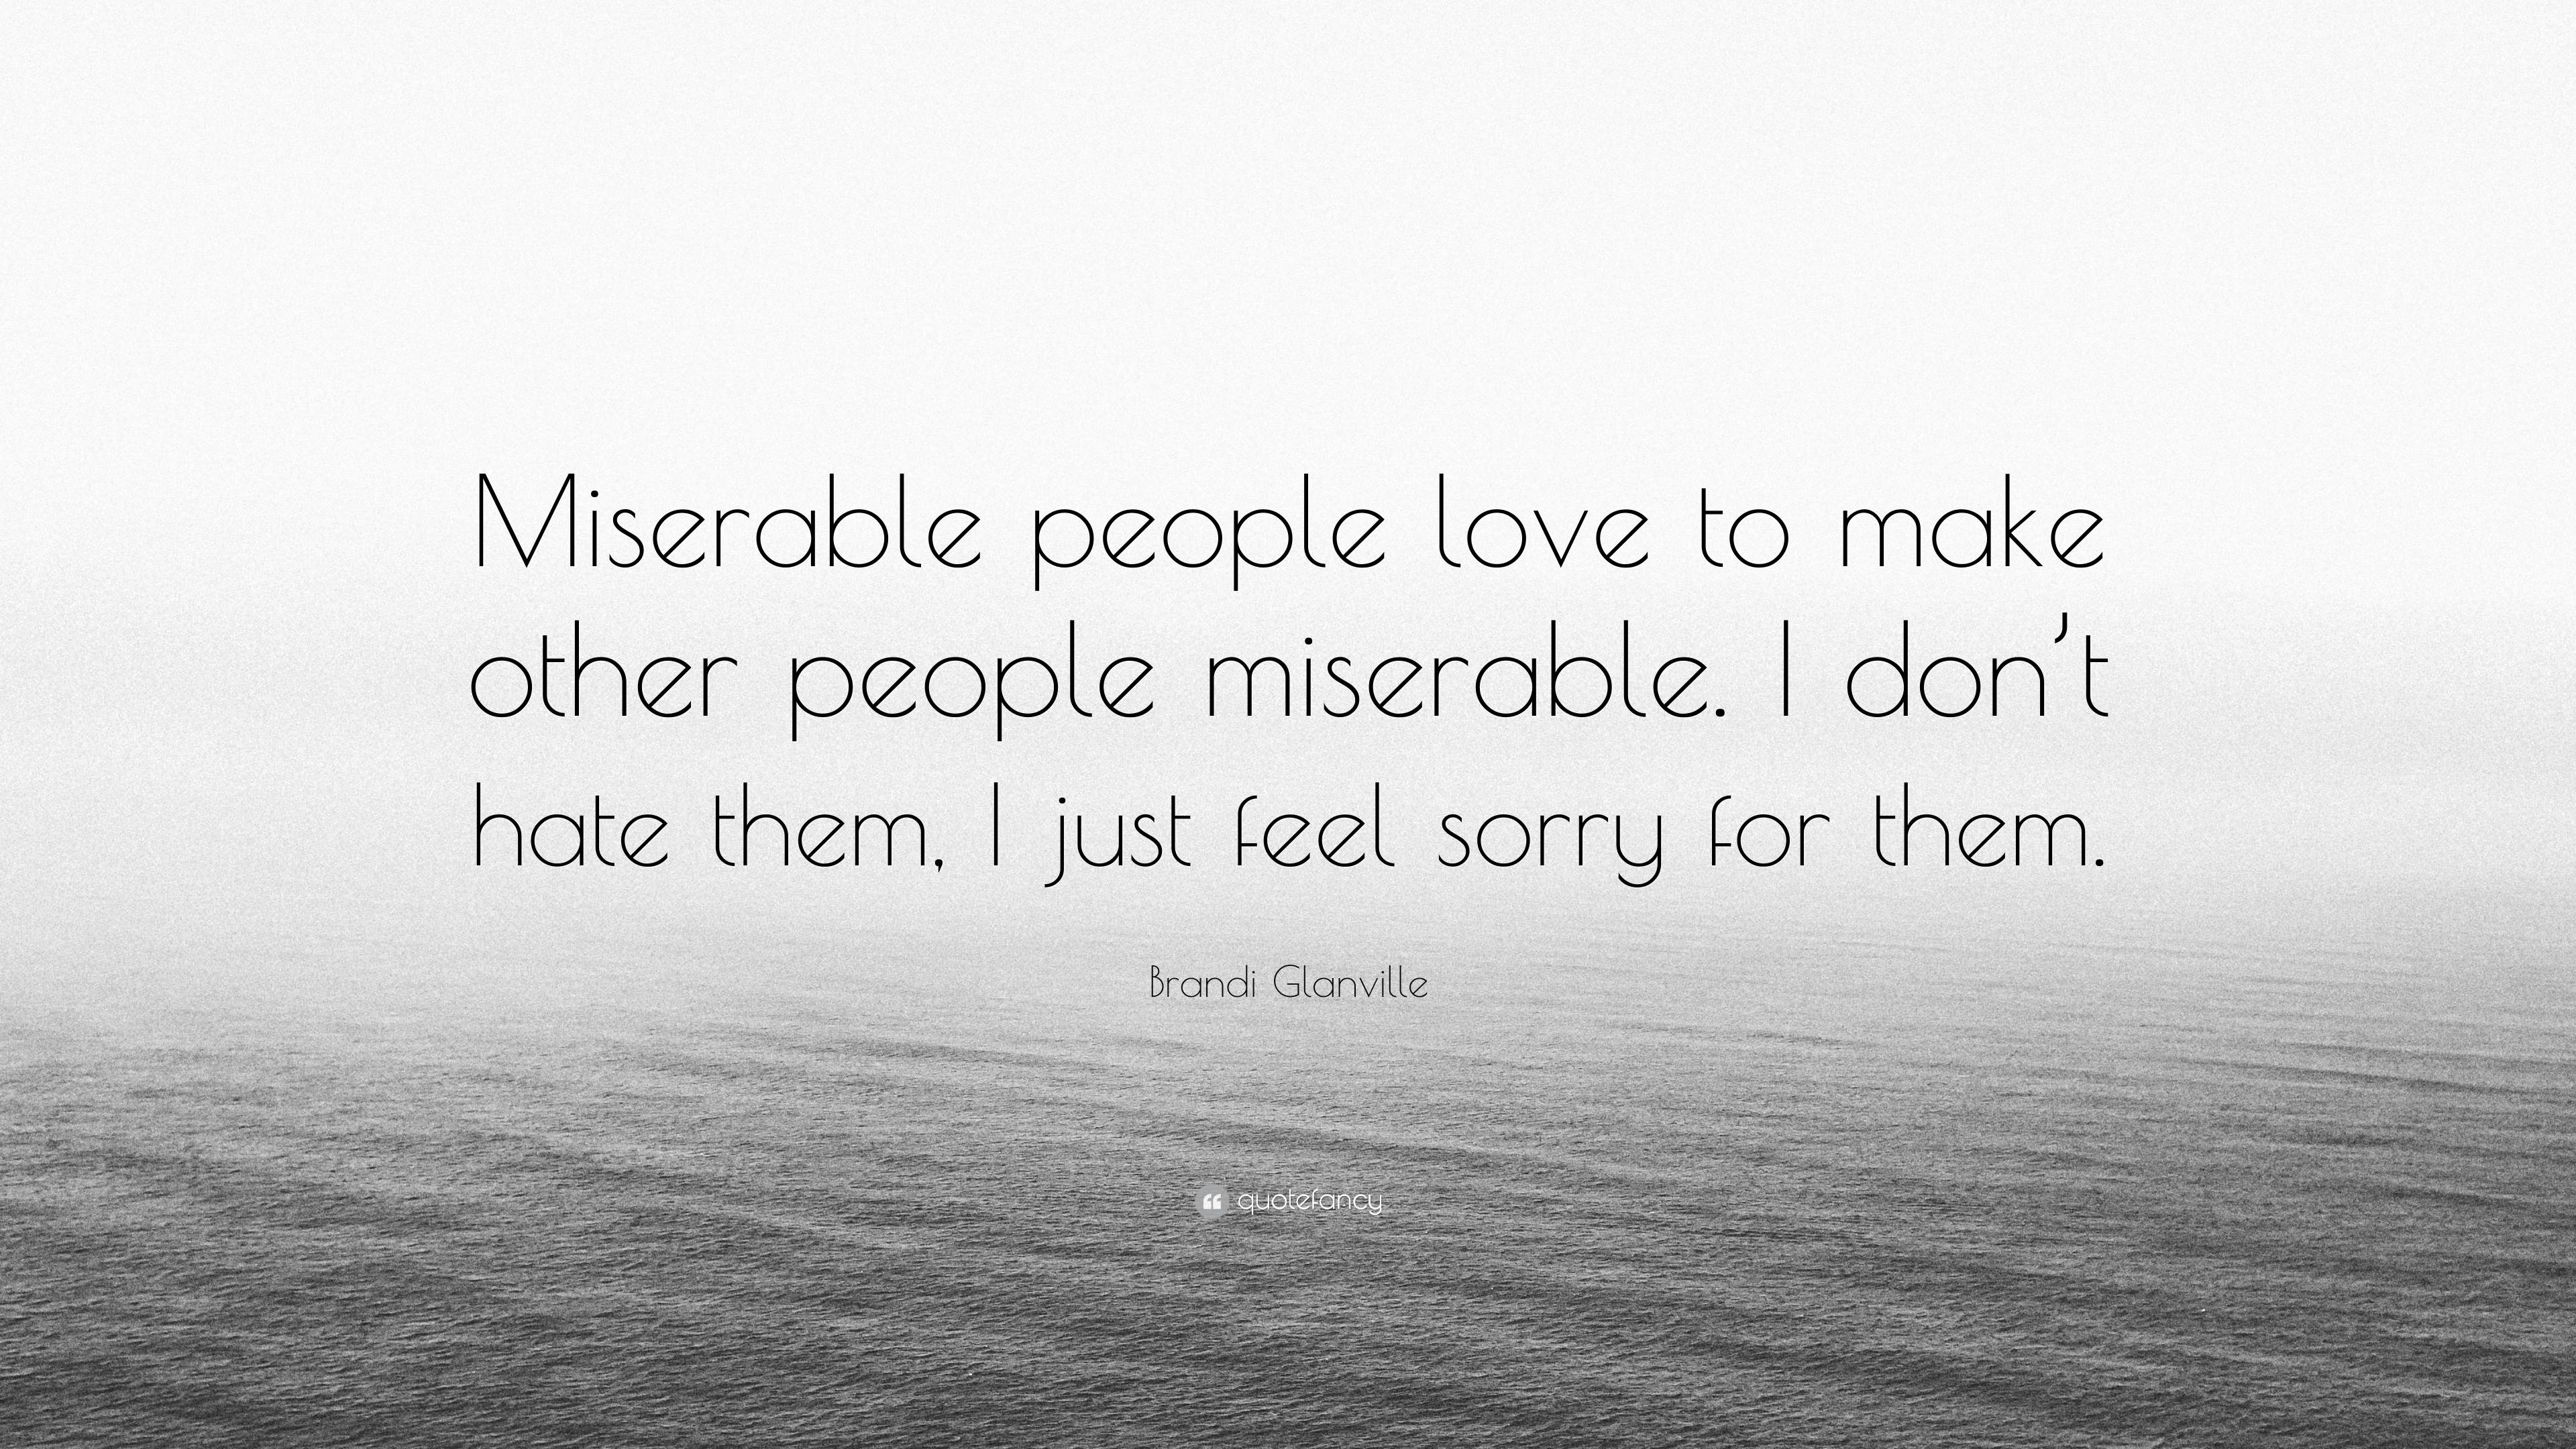 Brandi Glanville Quote Miserable People Love To Make Other People